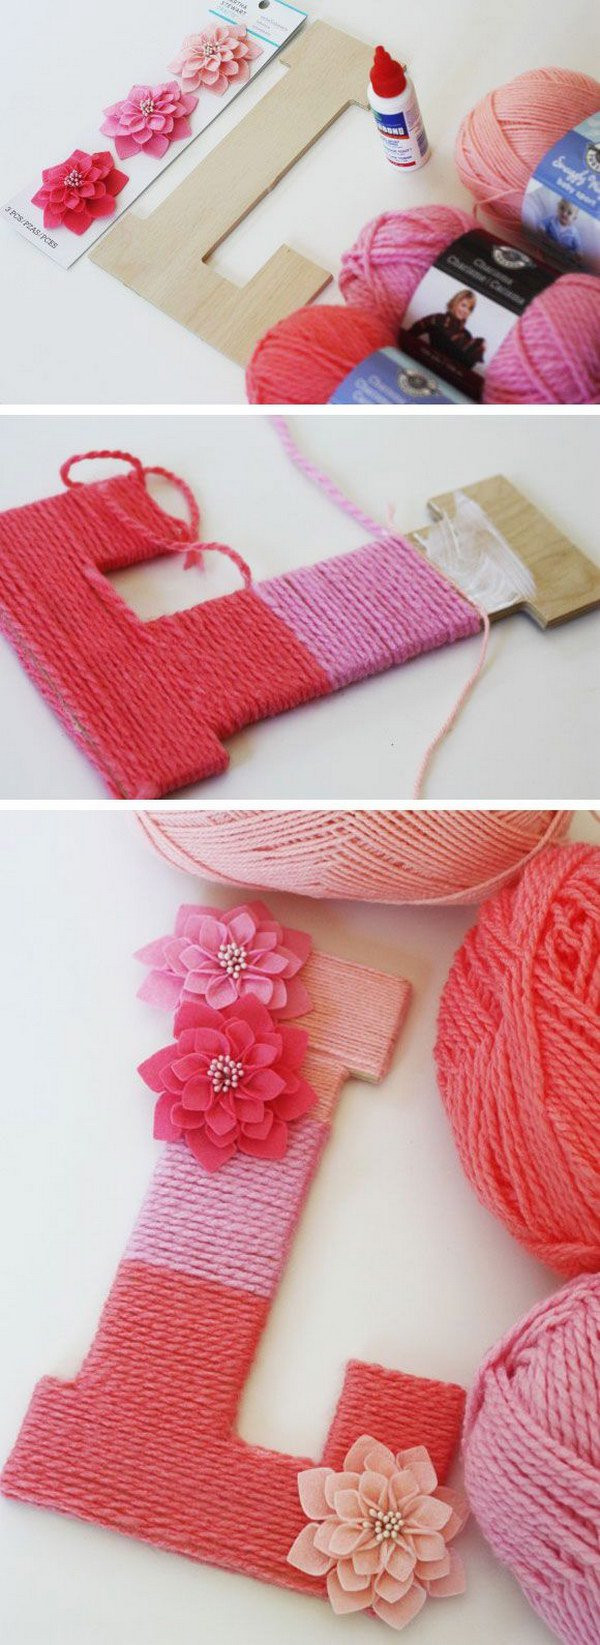 Best ideas about DIY Room Decoration For Girls . Save or Pin 25 DIY Ideas & Tutorials for Teenage Girl s Room Now.